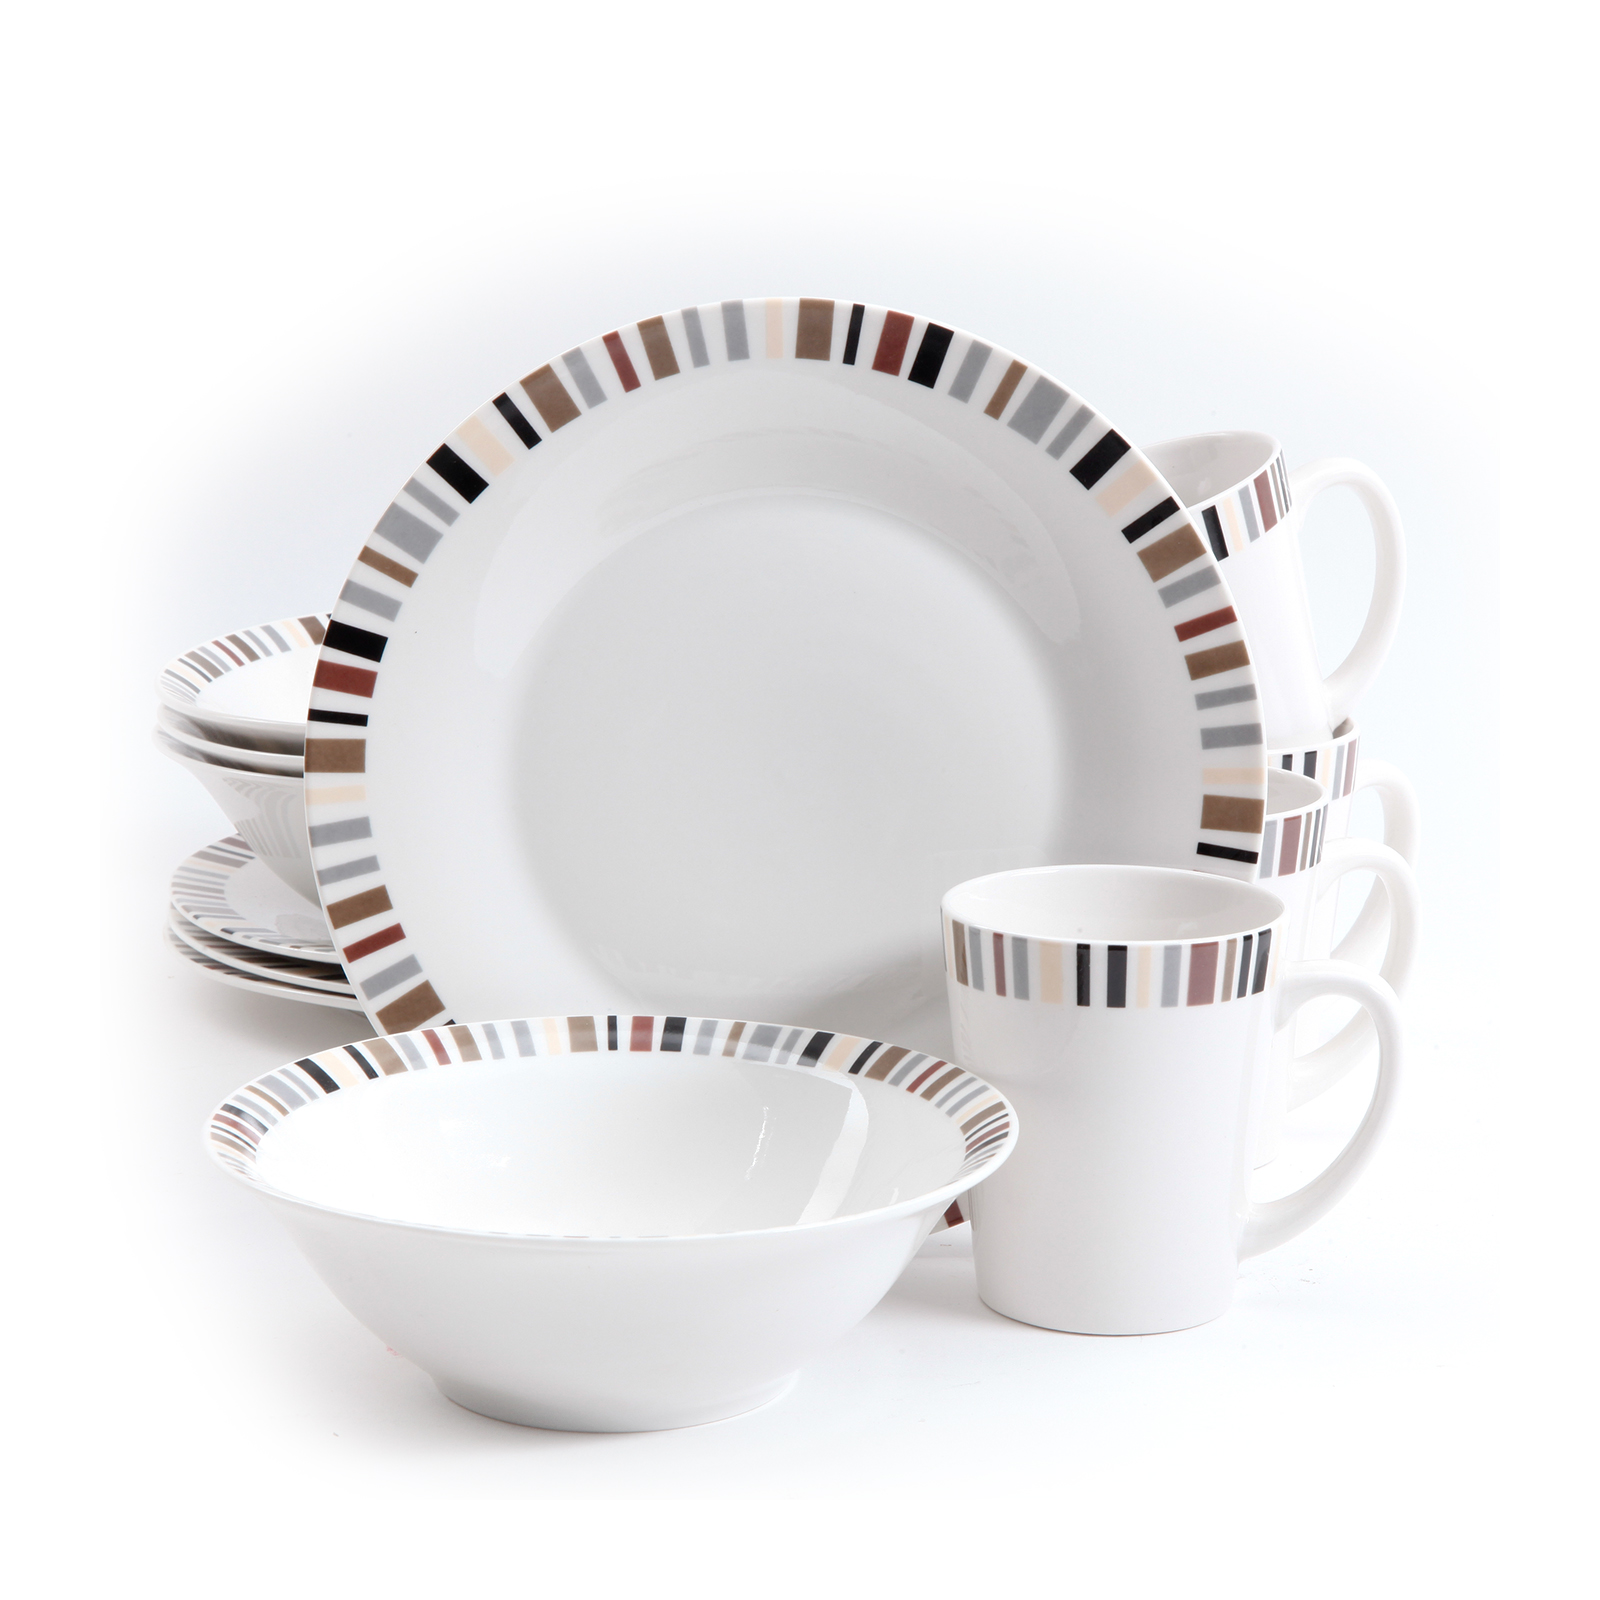 Image of Gibson 12 Piece Lanvale Fine Ceramic Dinnerware Set For 4, White